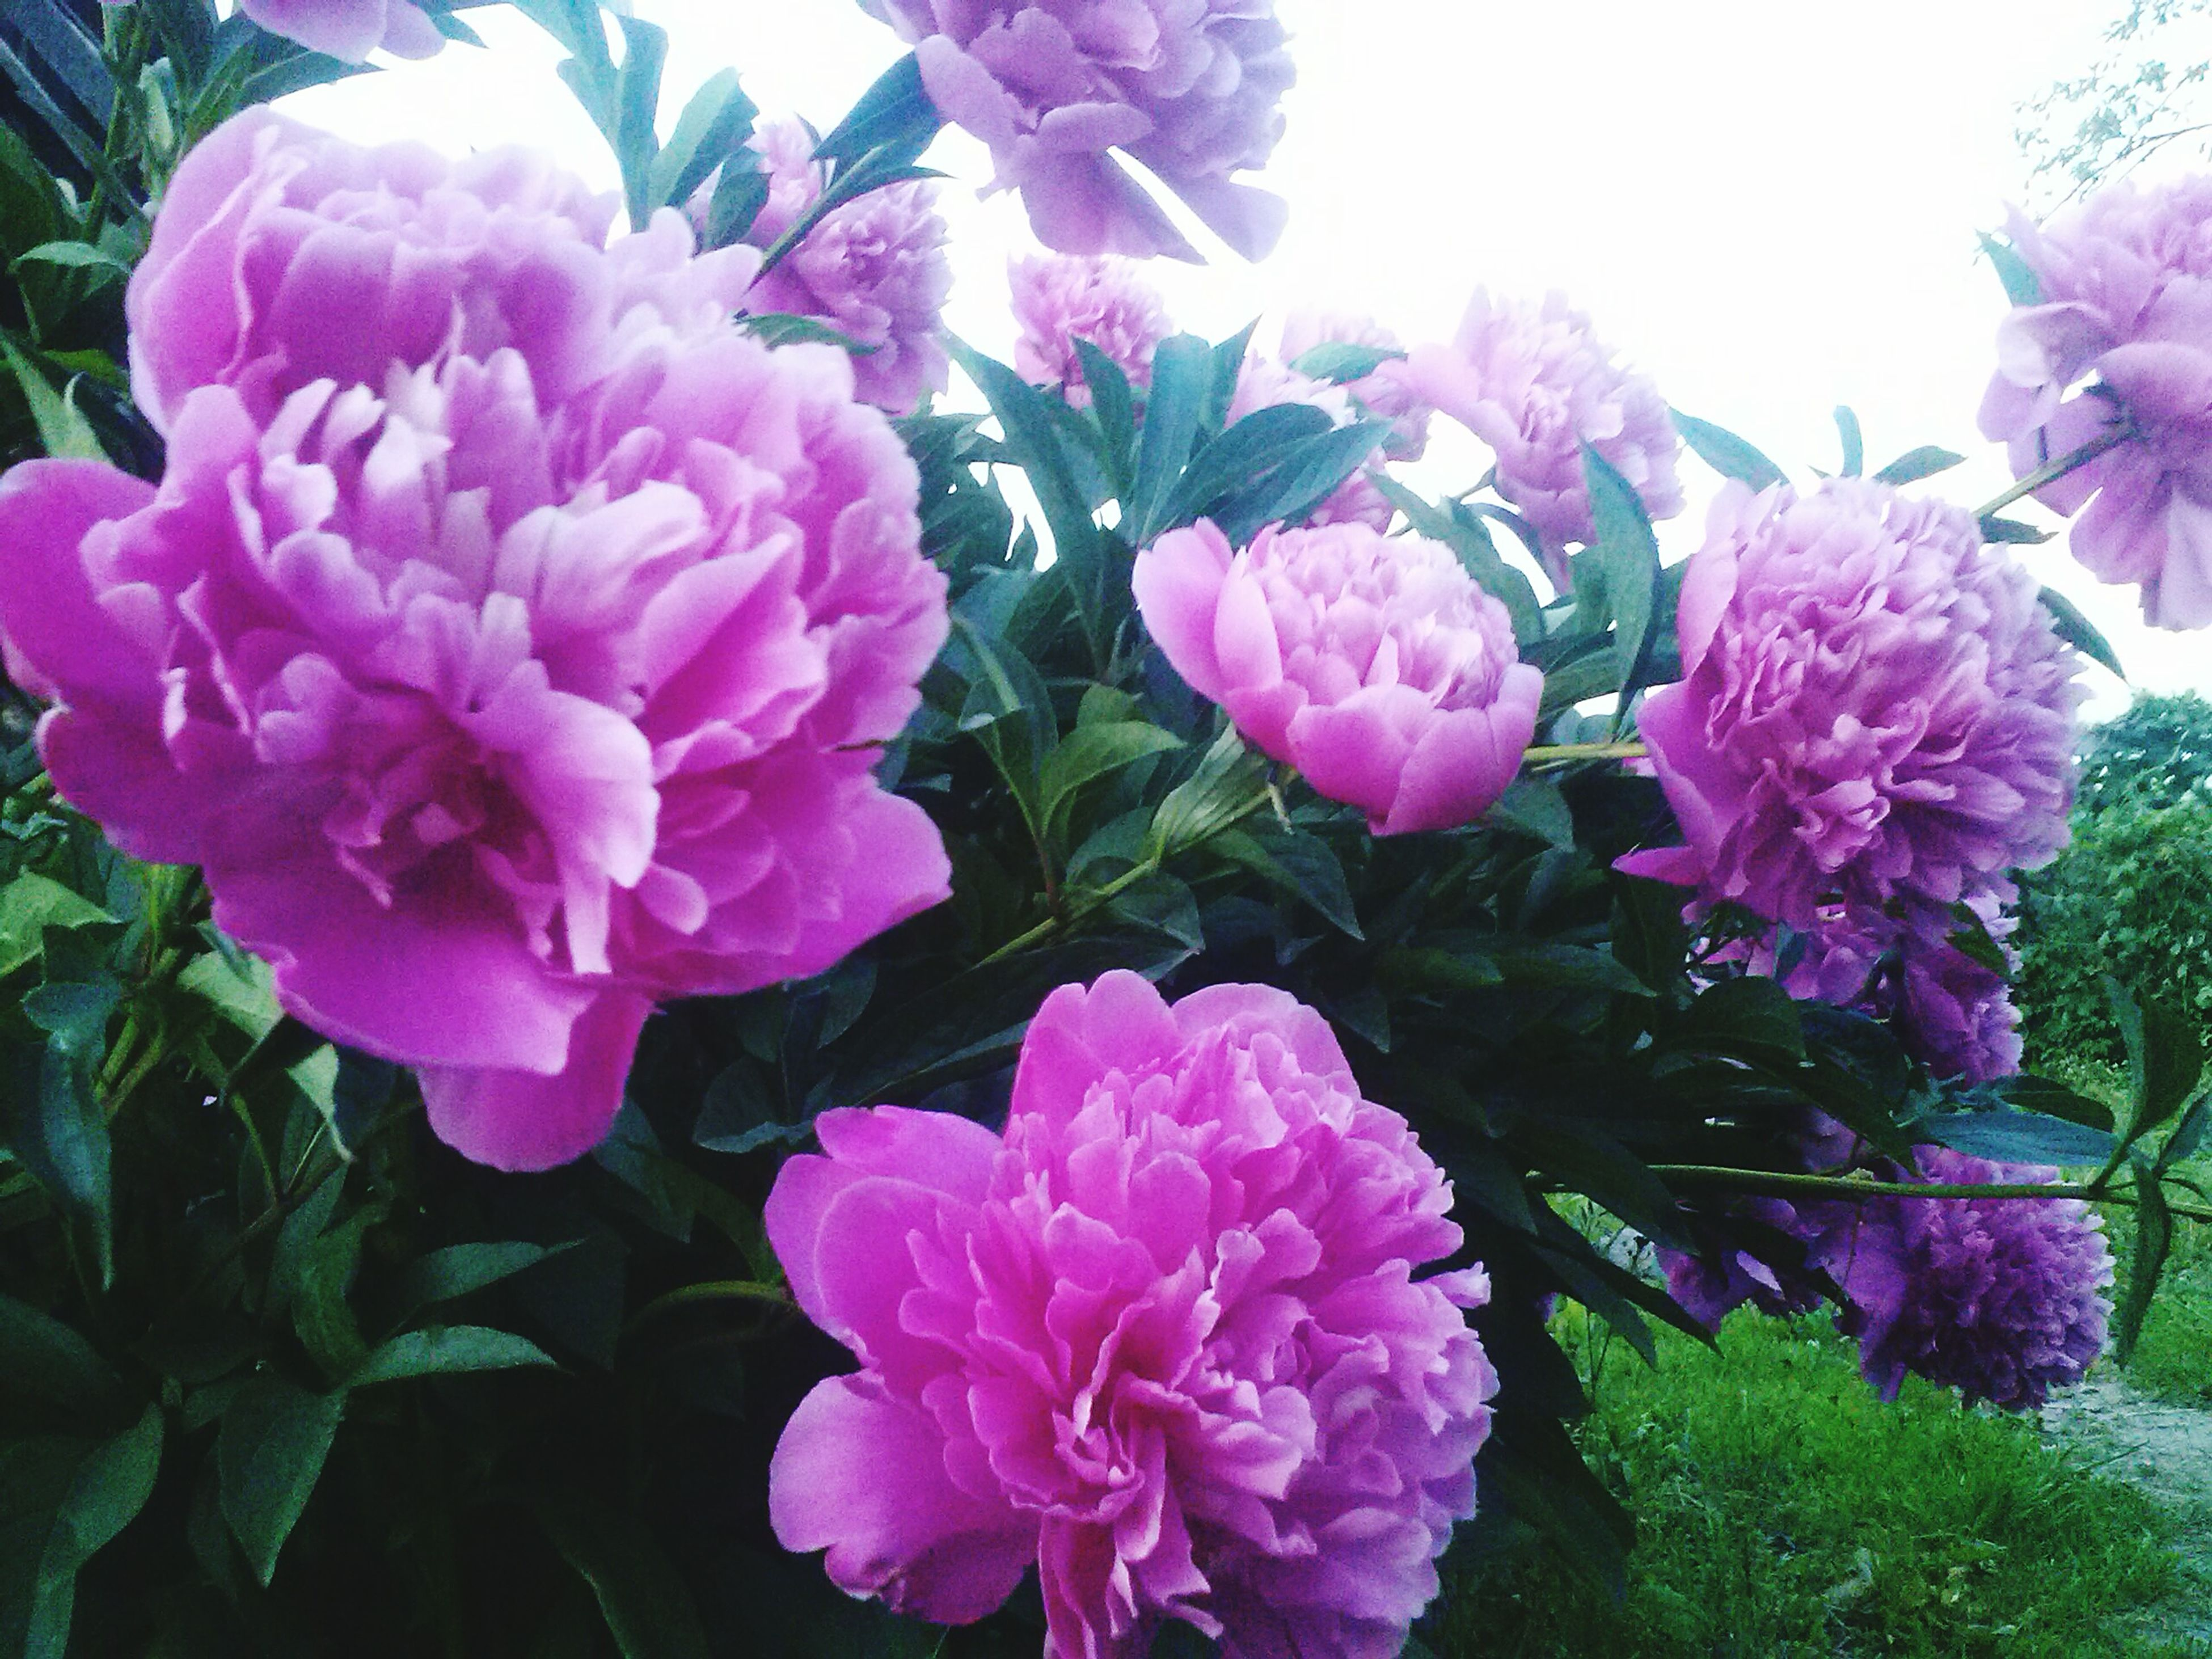 flower, freshness, fragility, petal, beauty in nature, growth, flower head, pink color, blooming, nature, plant, close-up, purple, in bloom, leaf, park - man made space, bunch of flowers, blossom, hydrangea, high angle view